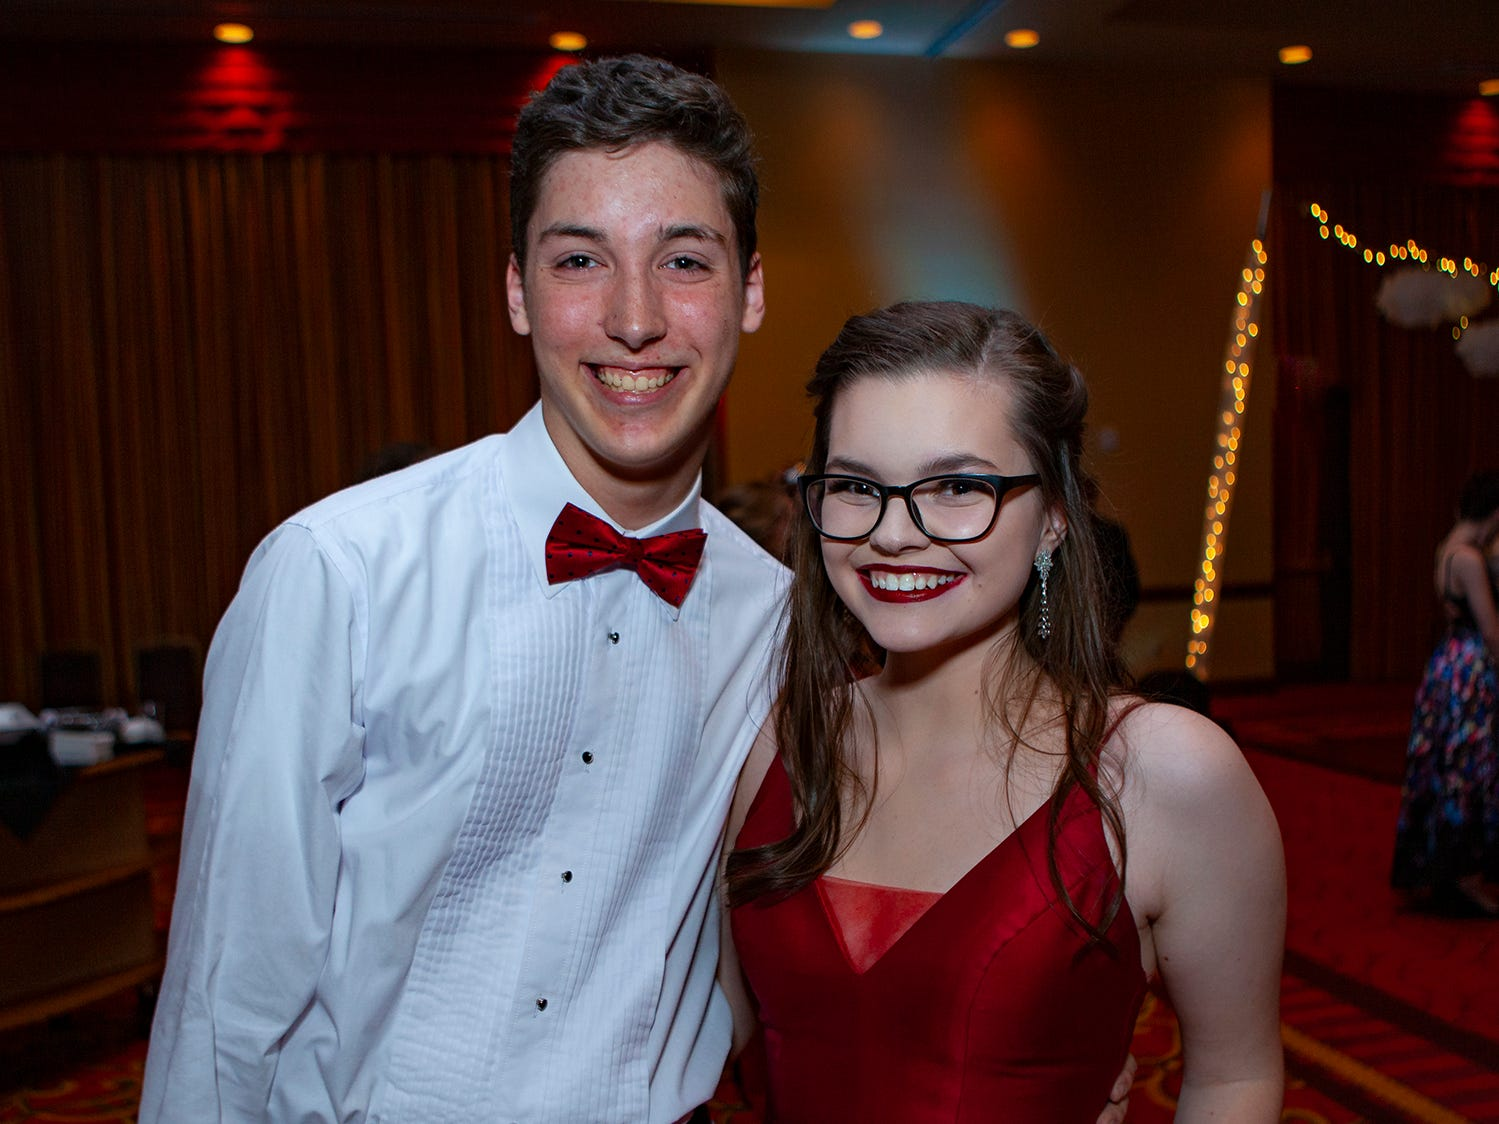 Nico Orantes and Leah Zachary paused for a photo at Central Magnet School's prom Saturday, April 6 at Embassy Suites in Murfreesboro.